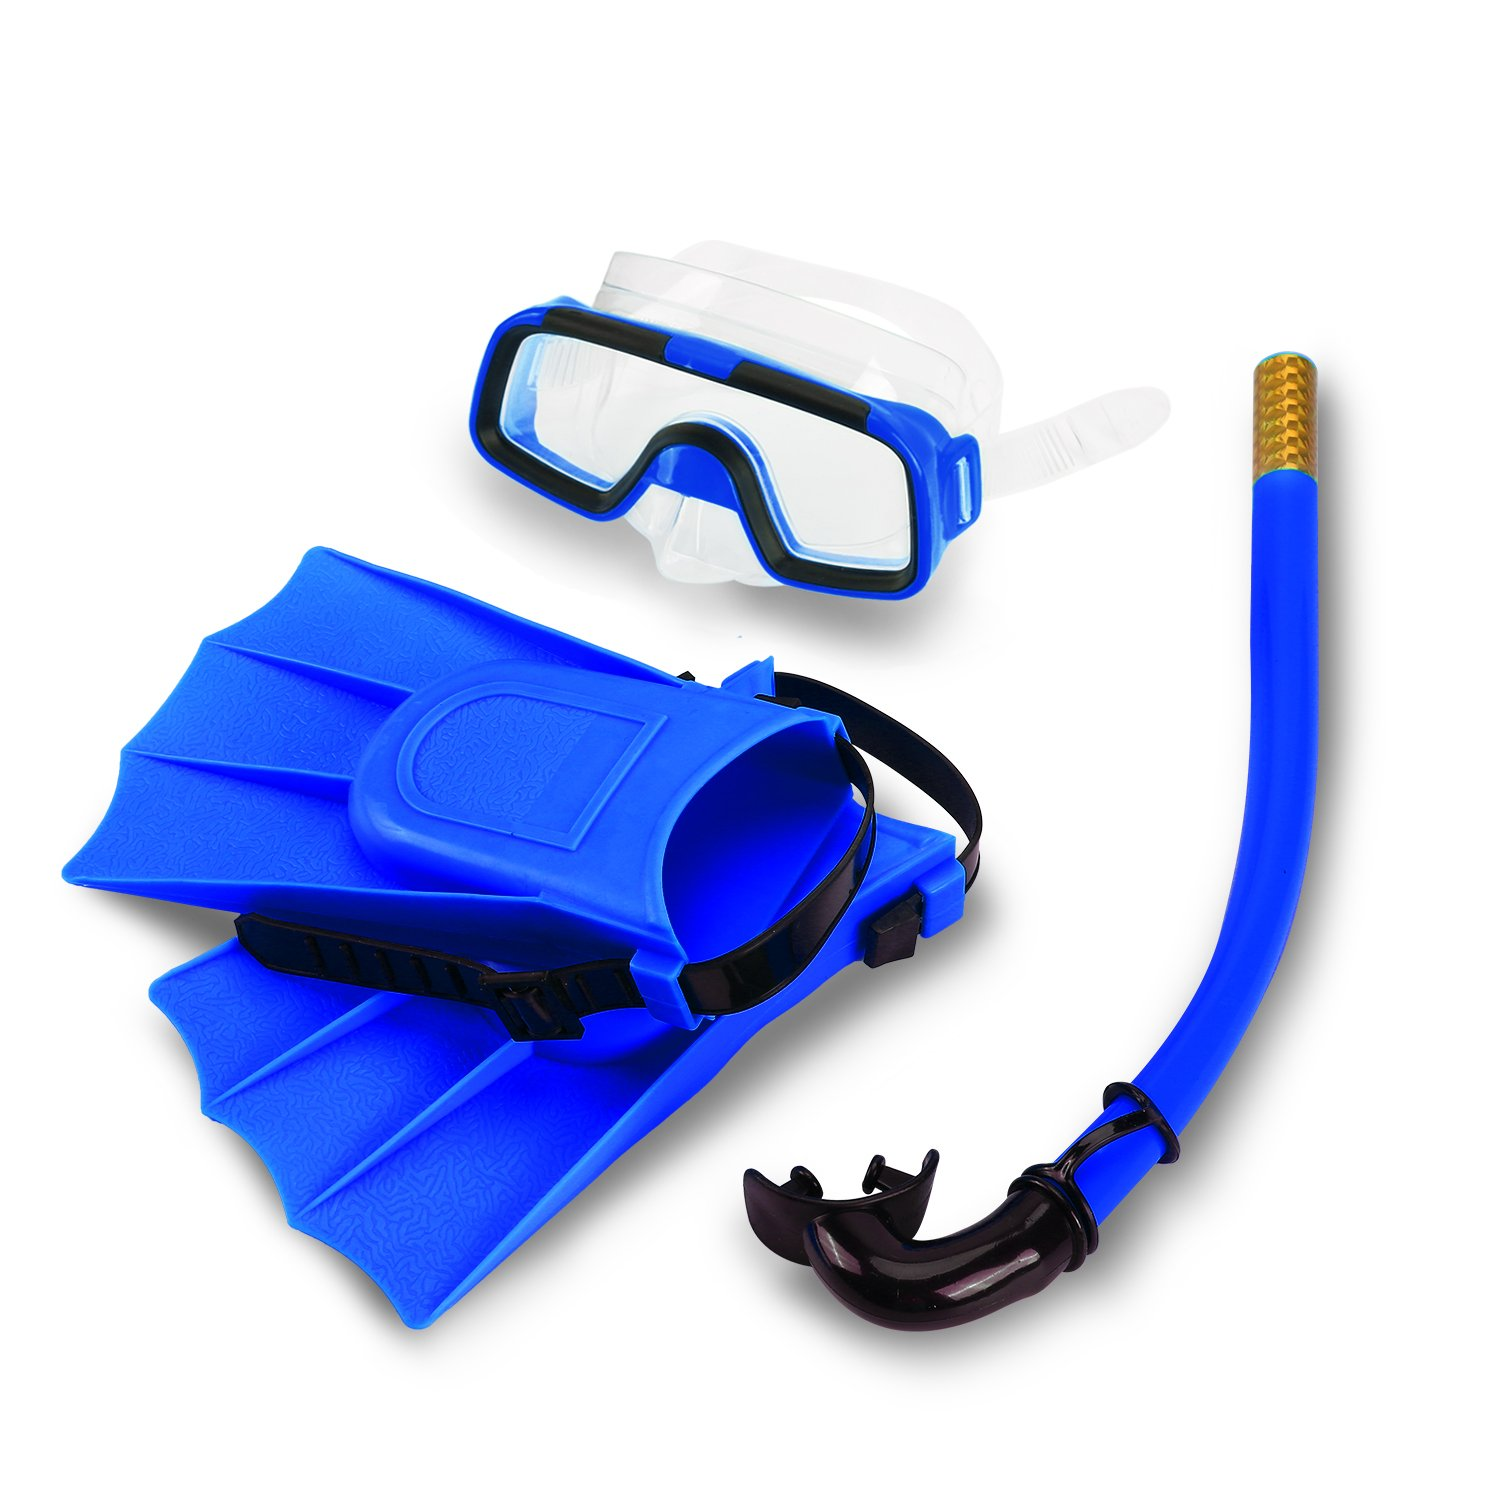 Bnineteenteam Kids Snorkel Set,Snorkeling Packages for Kids Aged 3-4 years old with Mask,Snorkel Scuba Eyeglasses /& Silicone Fins Blue